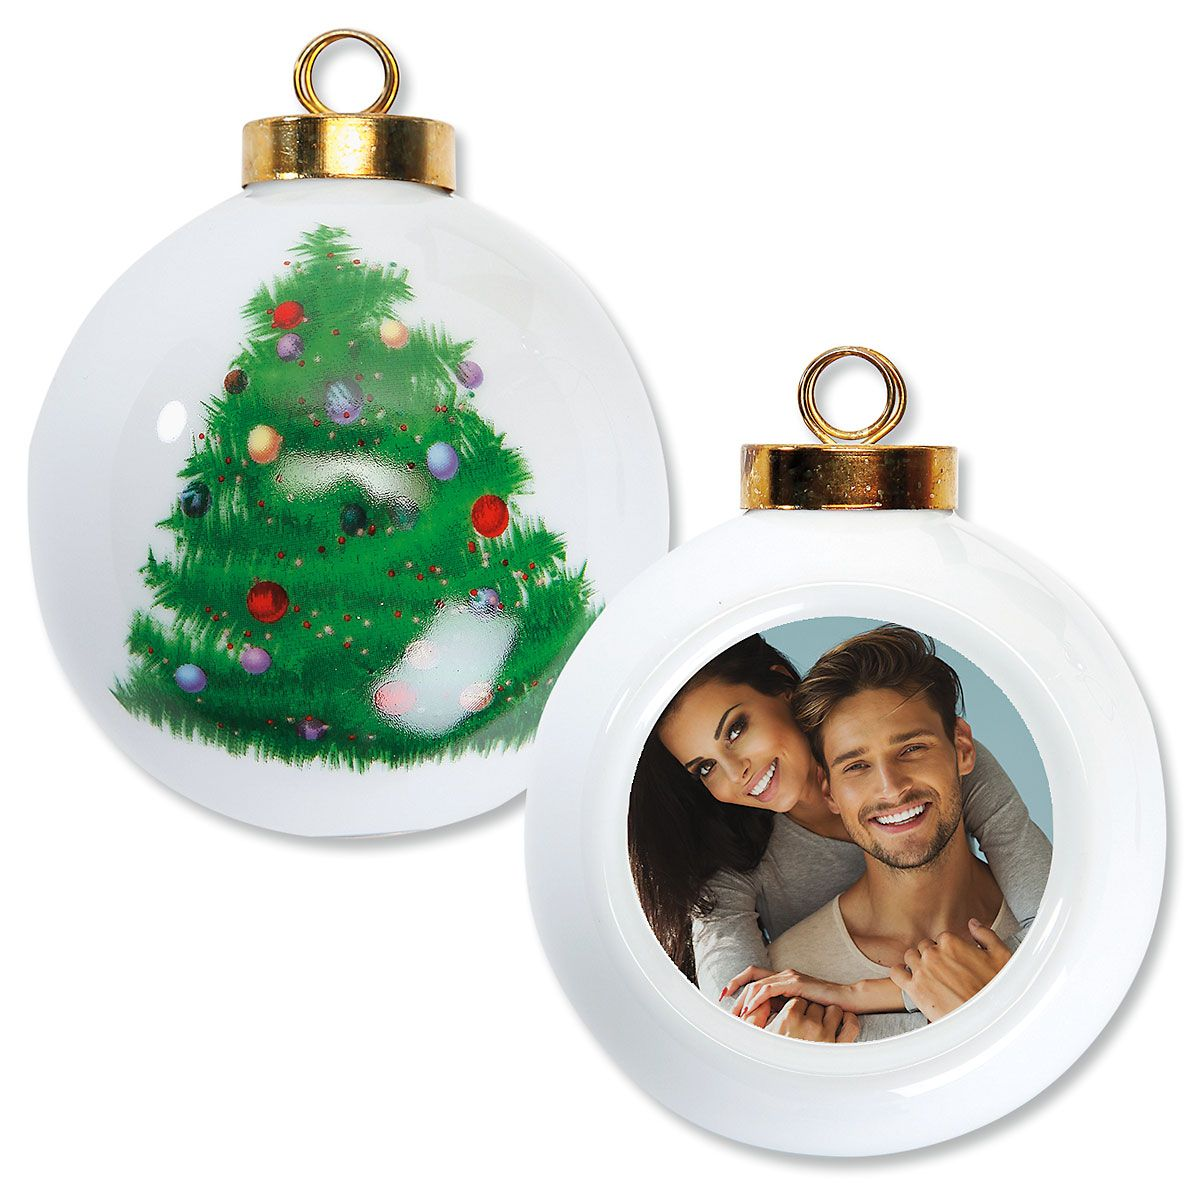 Full Custom Photo Ornament - Round Tree